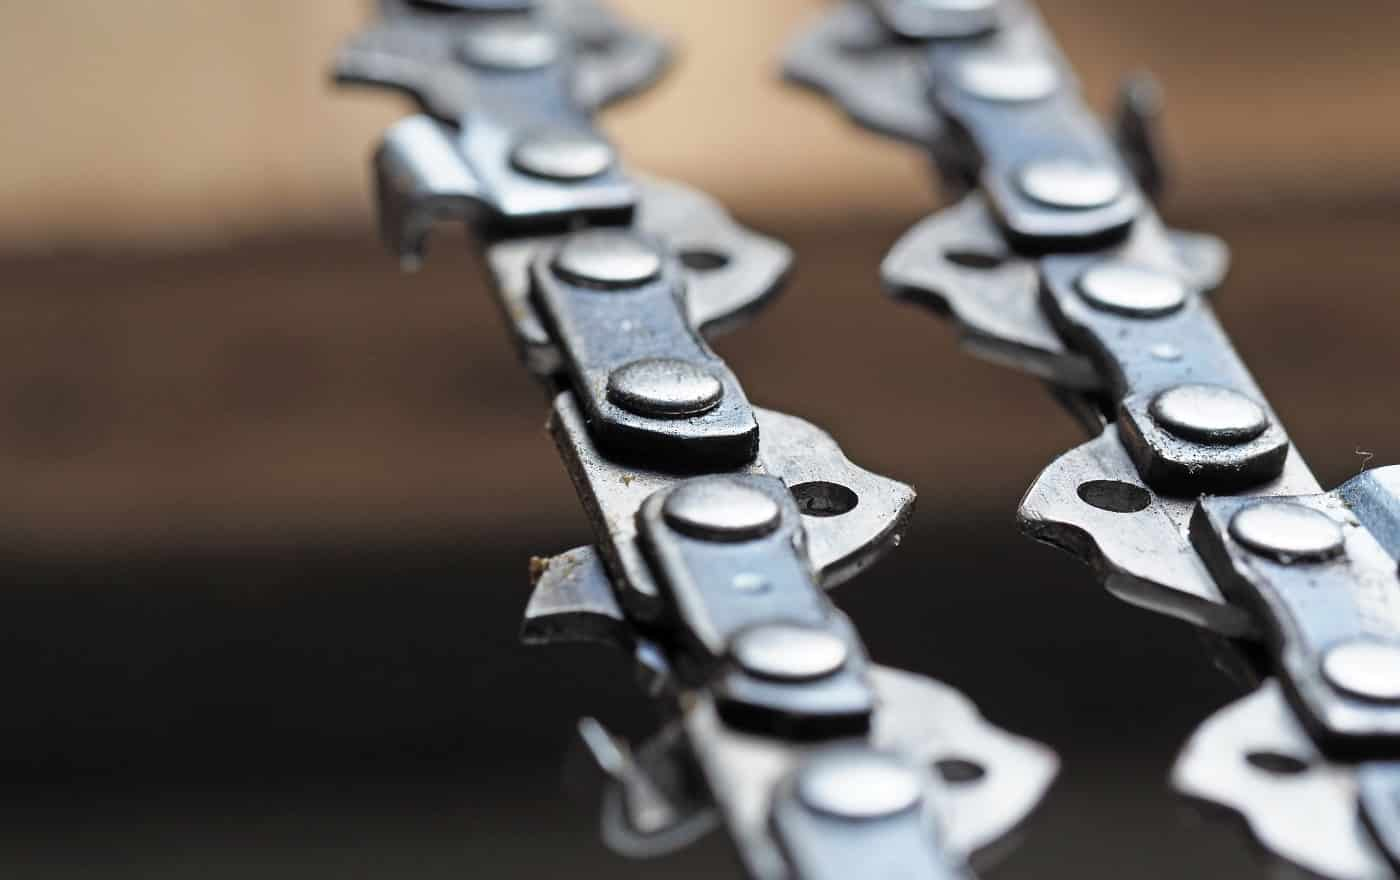 metal chainsaw chain with sharp teeth close-up with blurred background